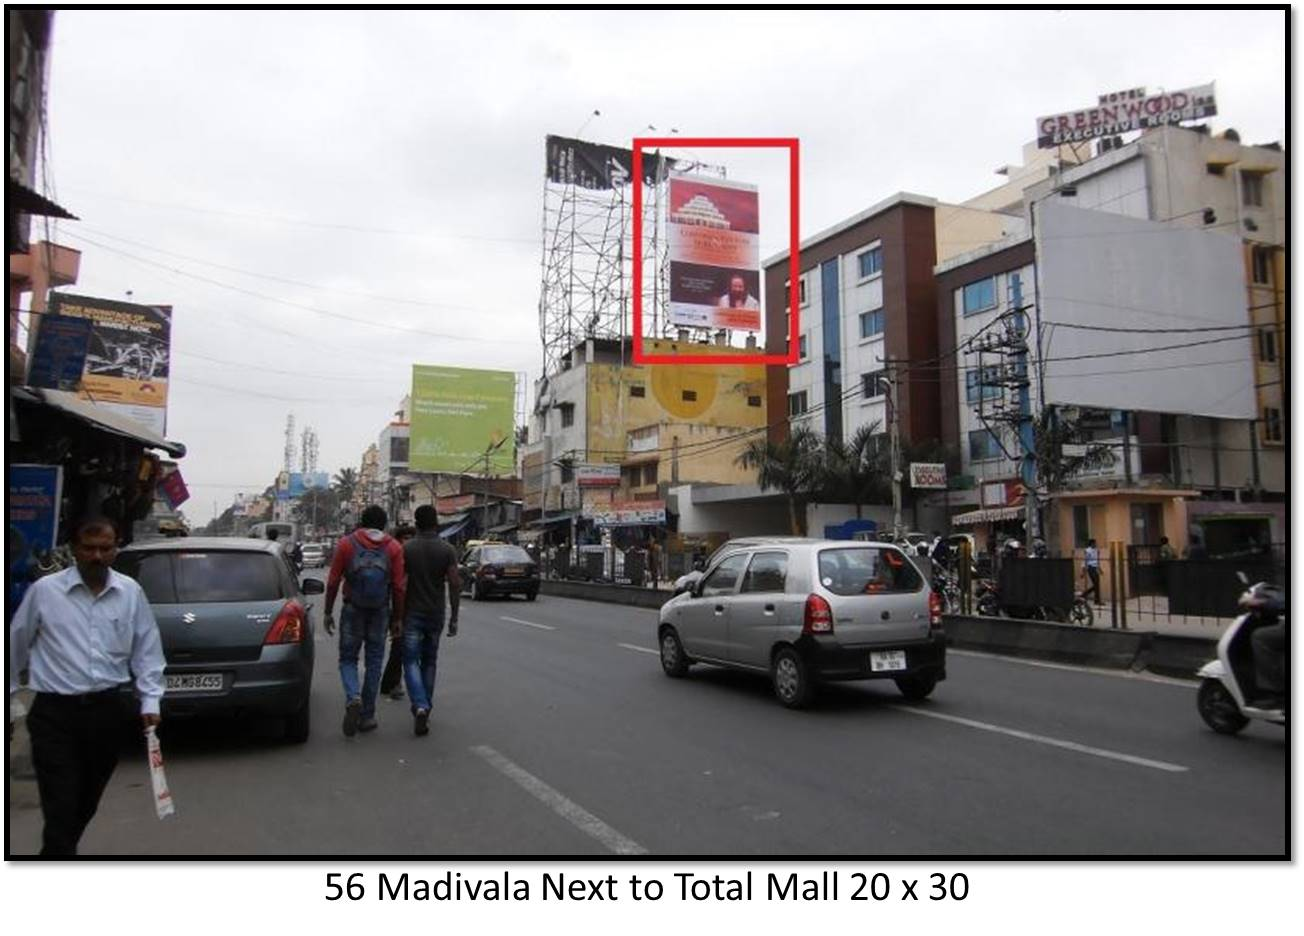 Madivala Next to Total Mall, Bengaluru